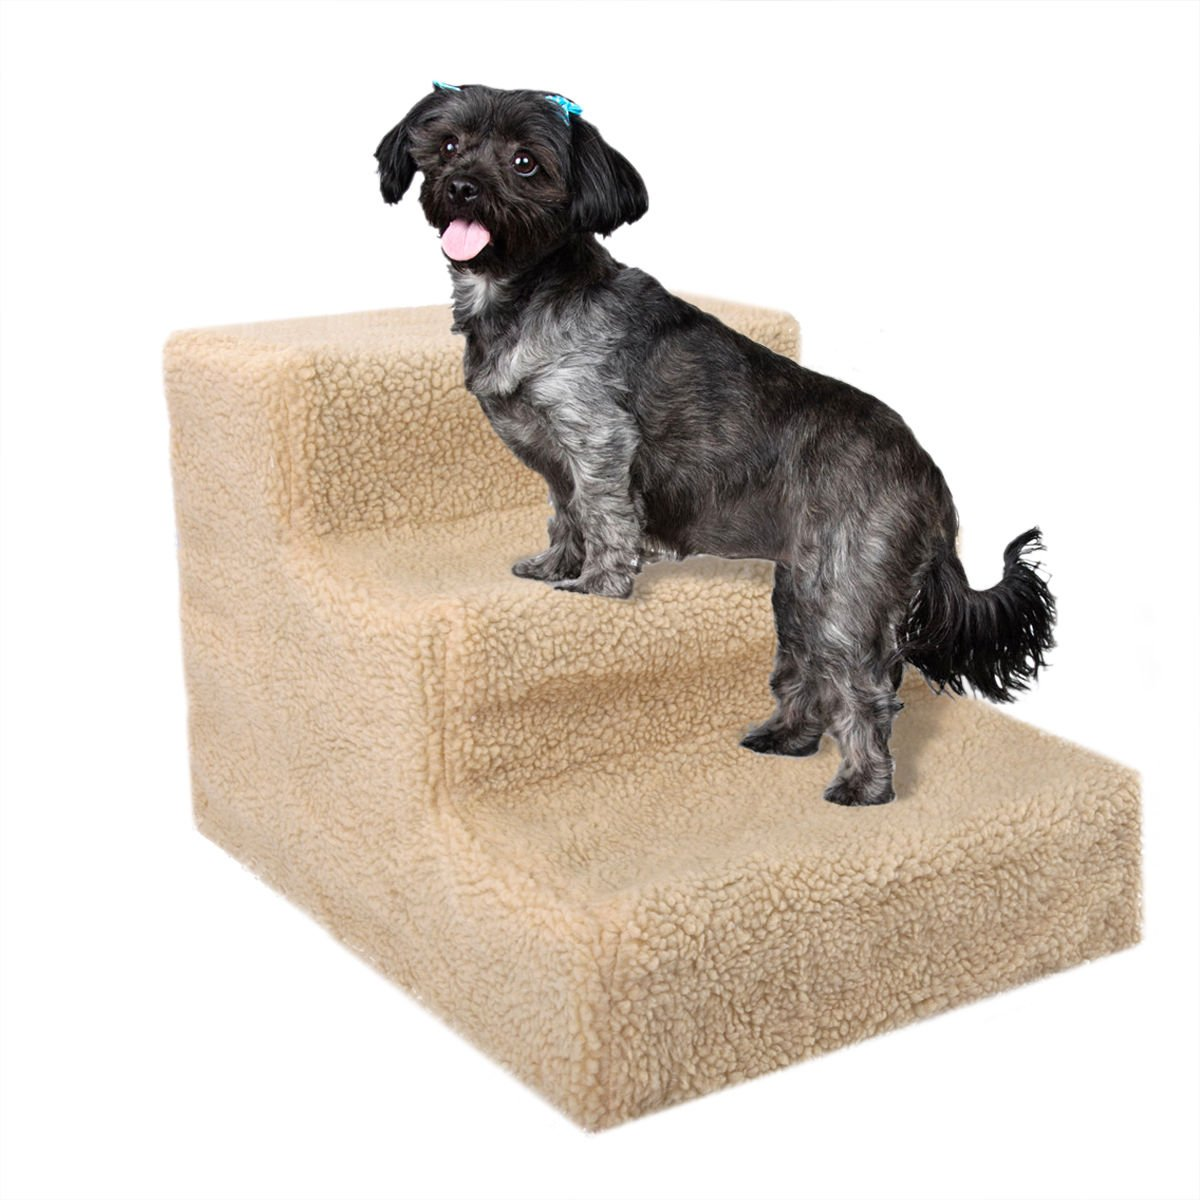 Lykos Soft Portable Cat Dog 3 Steps Ramp Small Climb Pet Step Stairs (Beige) by Lykos (Image #4)